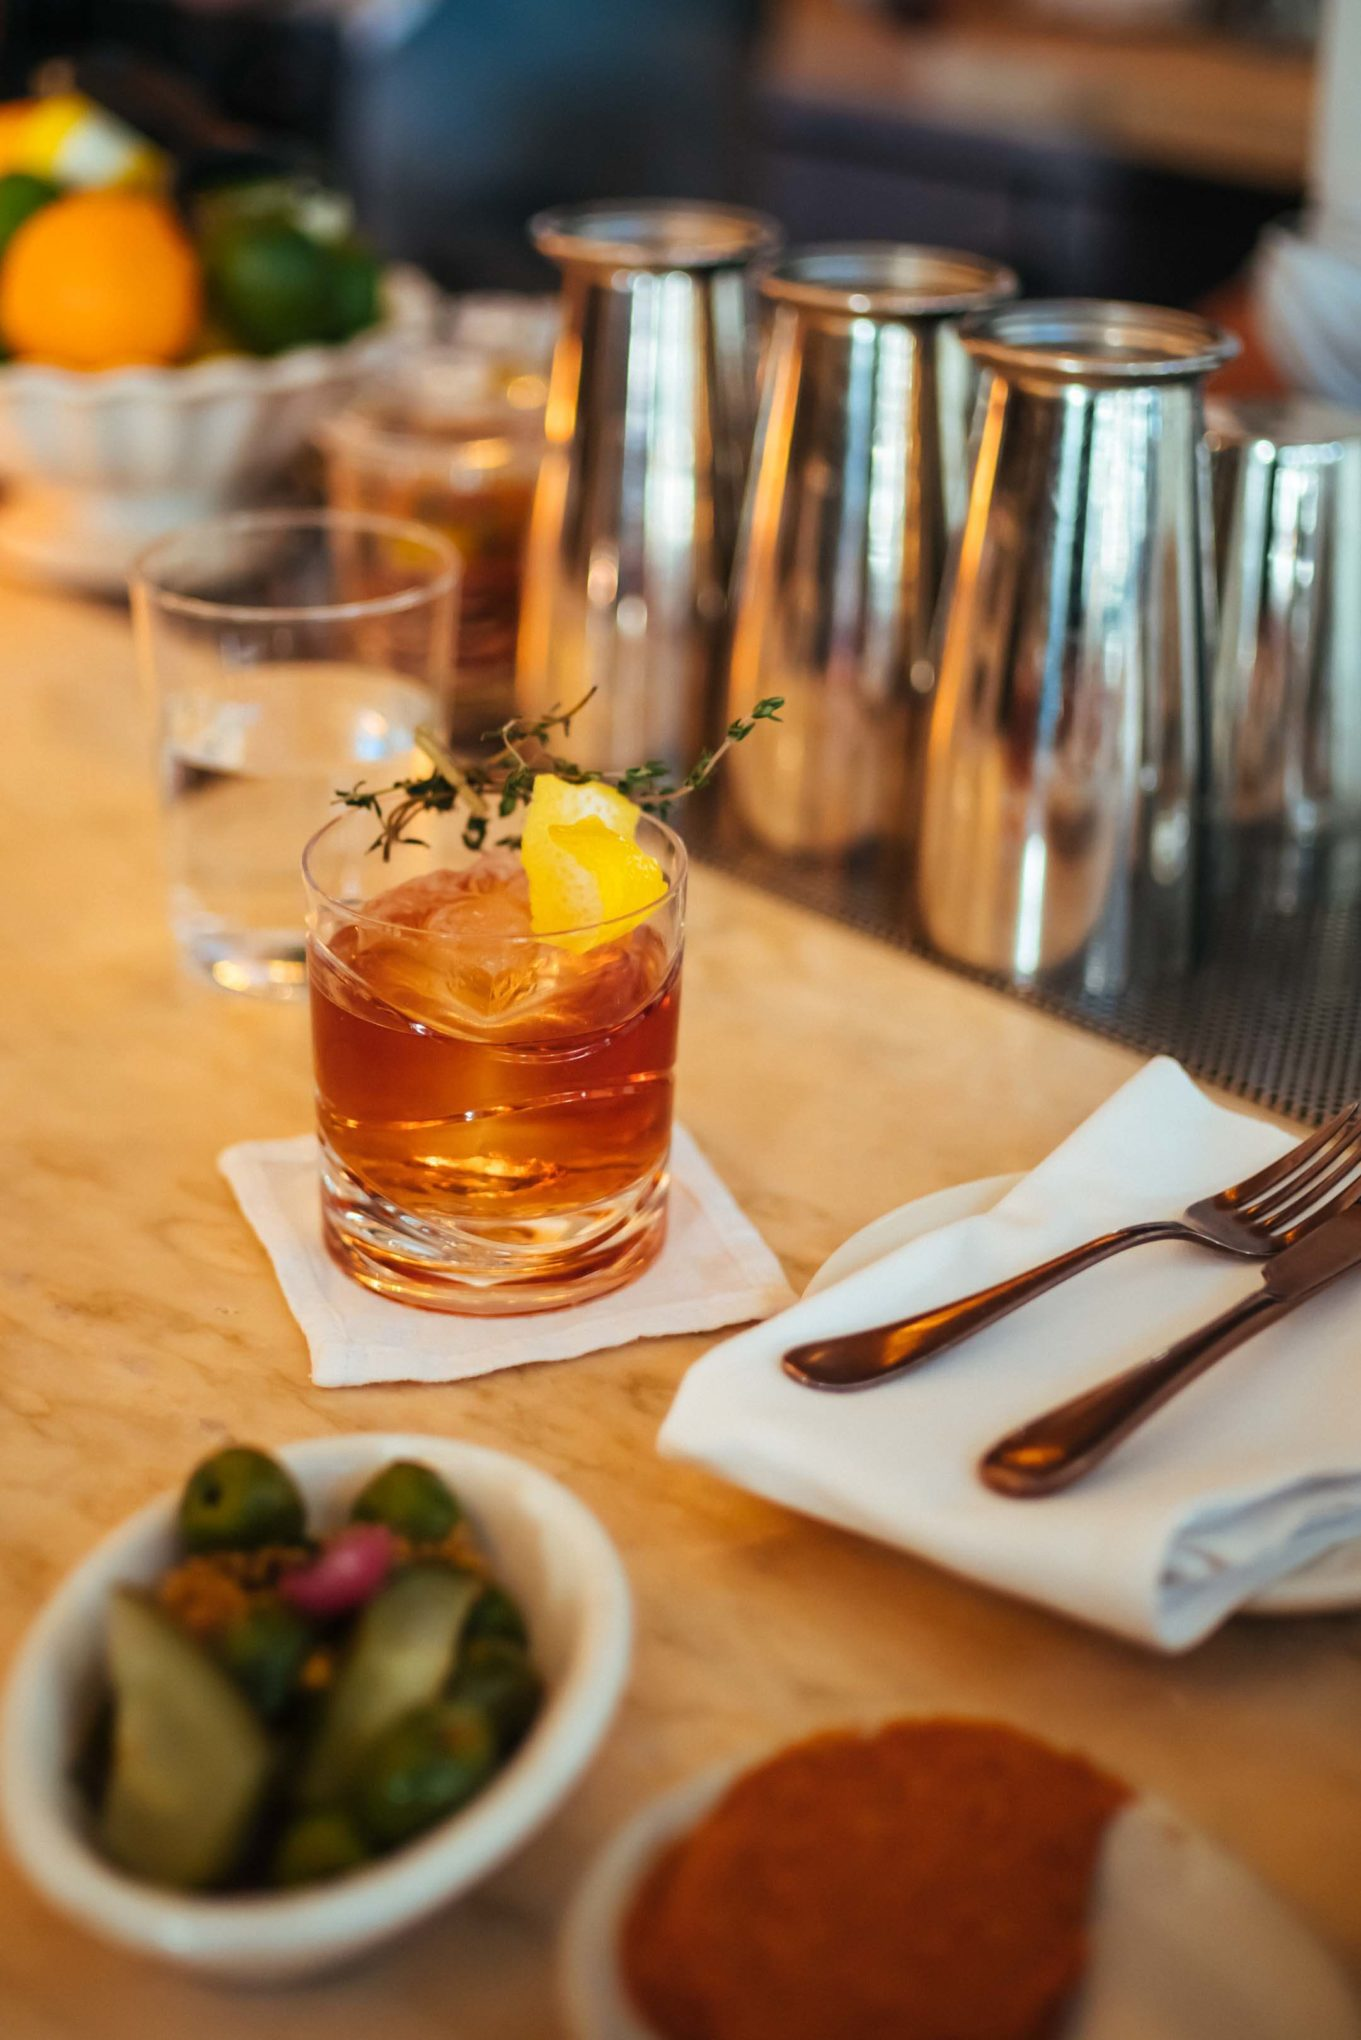 "The Taste Edit recommends for the best cocktails in Hollywood visit Chef Curtis Stone's Gwen in Los Angeles. For a twist on a Negroni, try the ""Negroni Reflection"" made with Sloe Gin, Salers aperitif, thyme, amara, and raspberry"